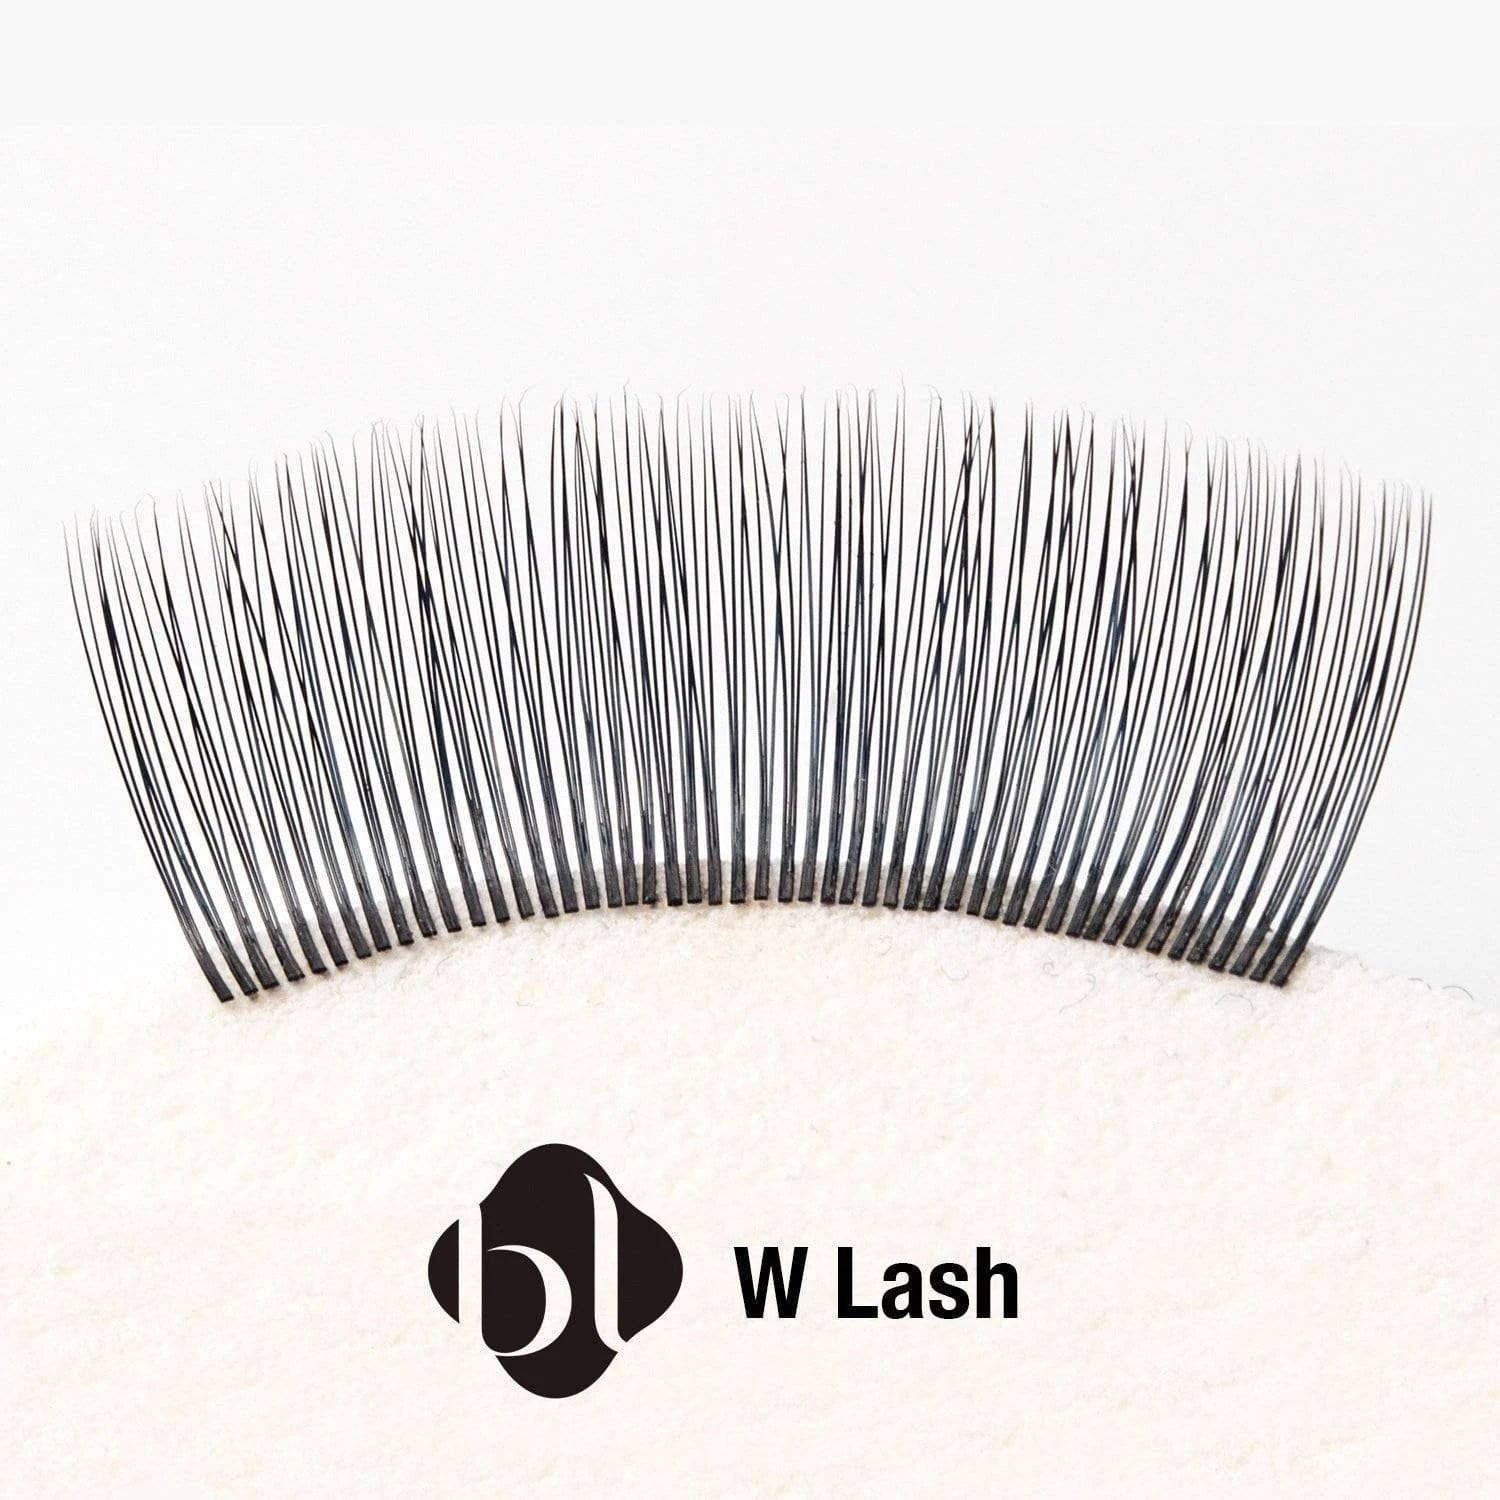 Blink BL Lashes (3D) 0.07 9 mm eyelash extensions